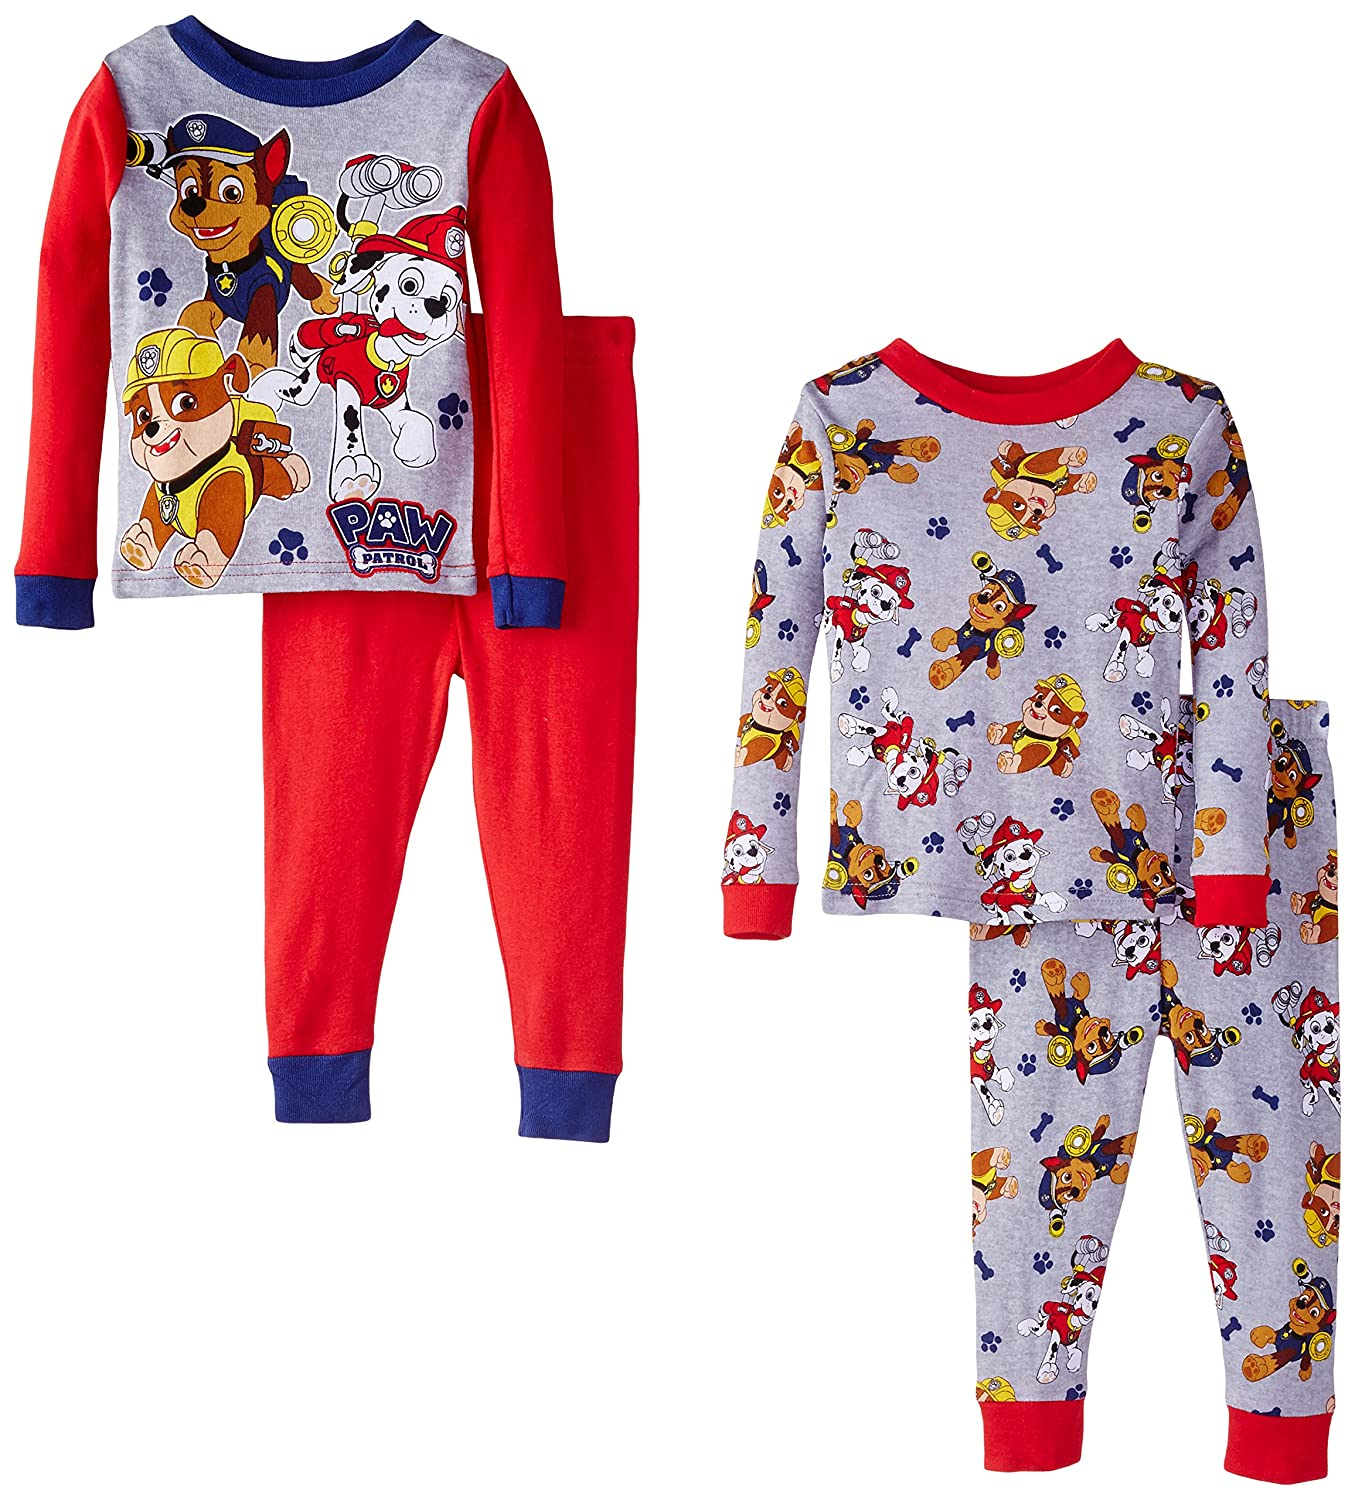 Paw Patrol Little Boys' Rescue Coming Four-Piece Pajama Set Red 2T AME Sleepwear Girls 2-6x